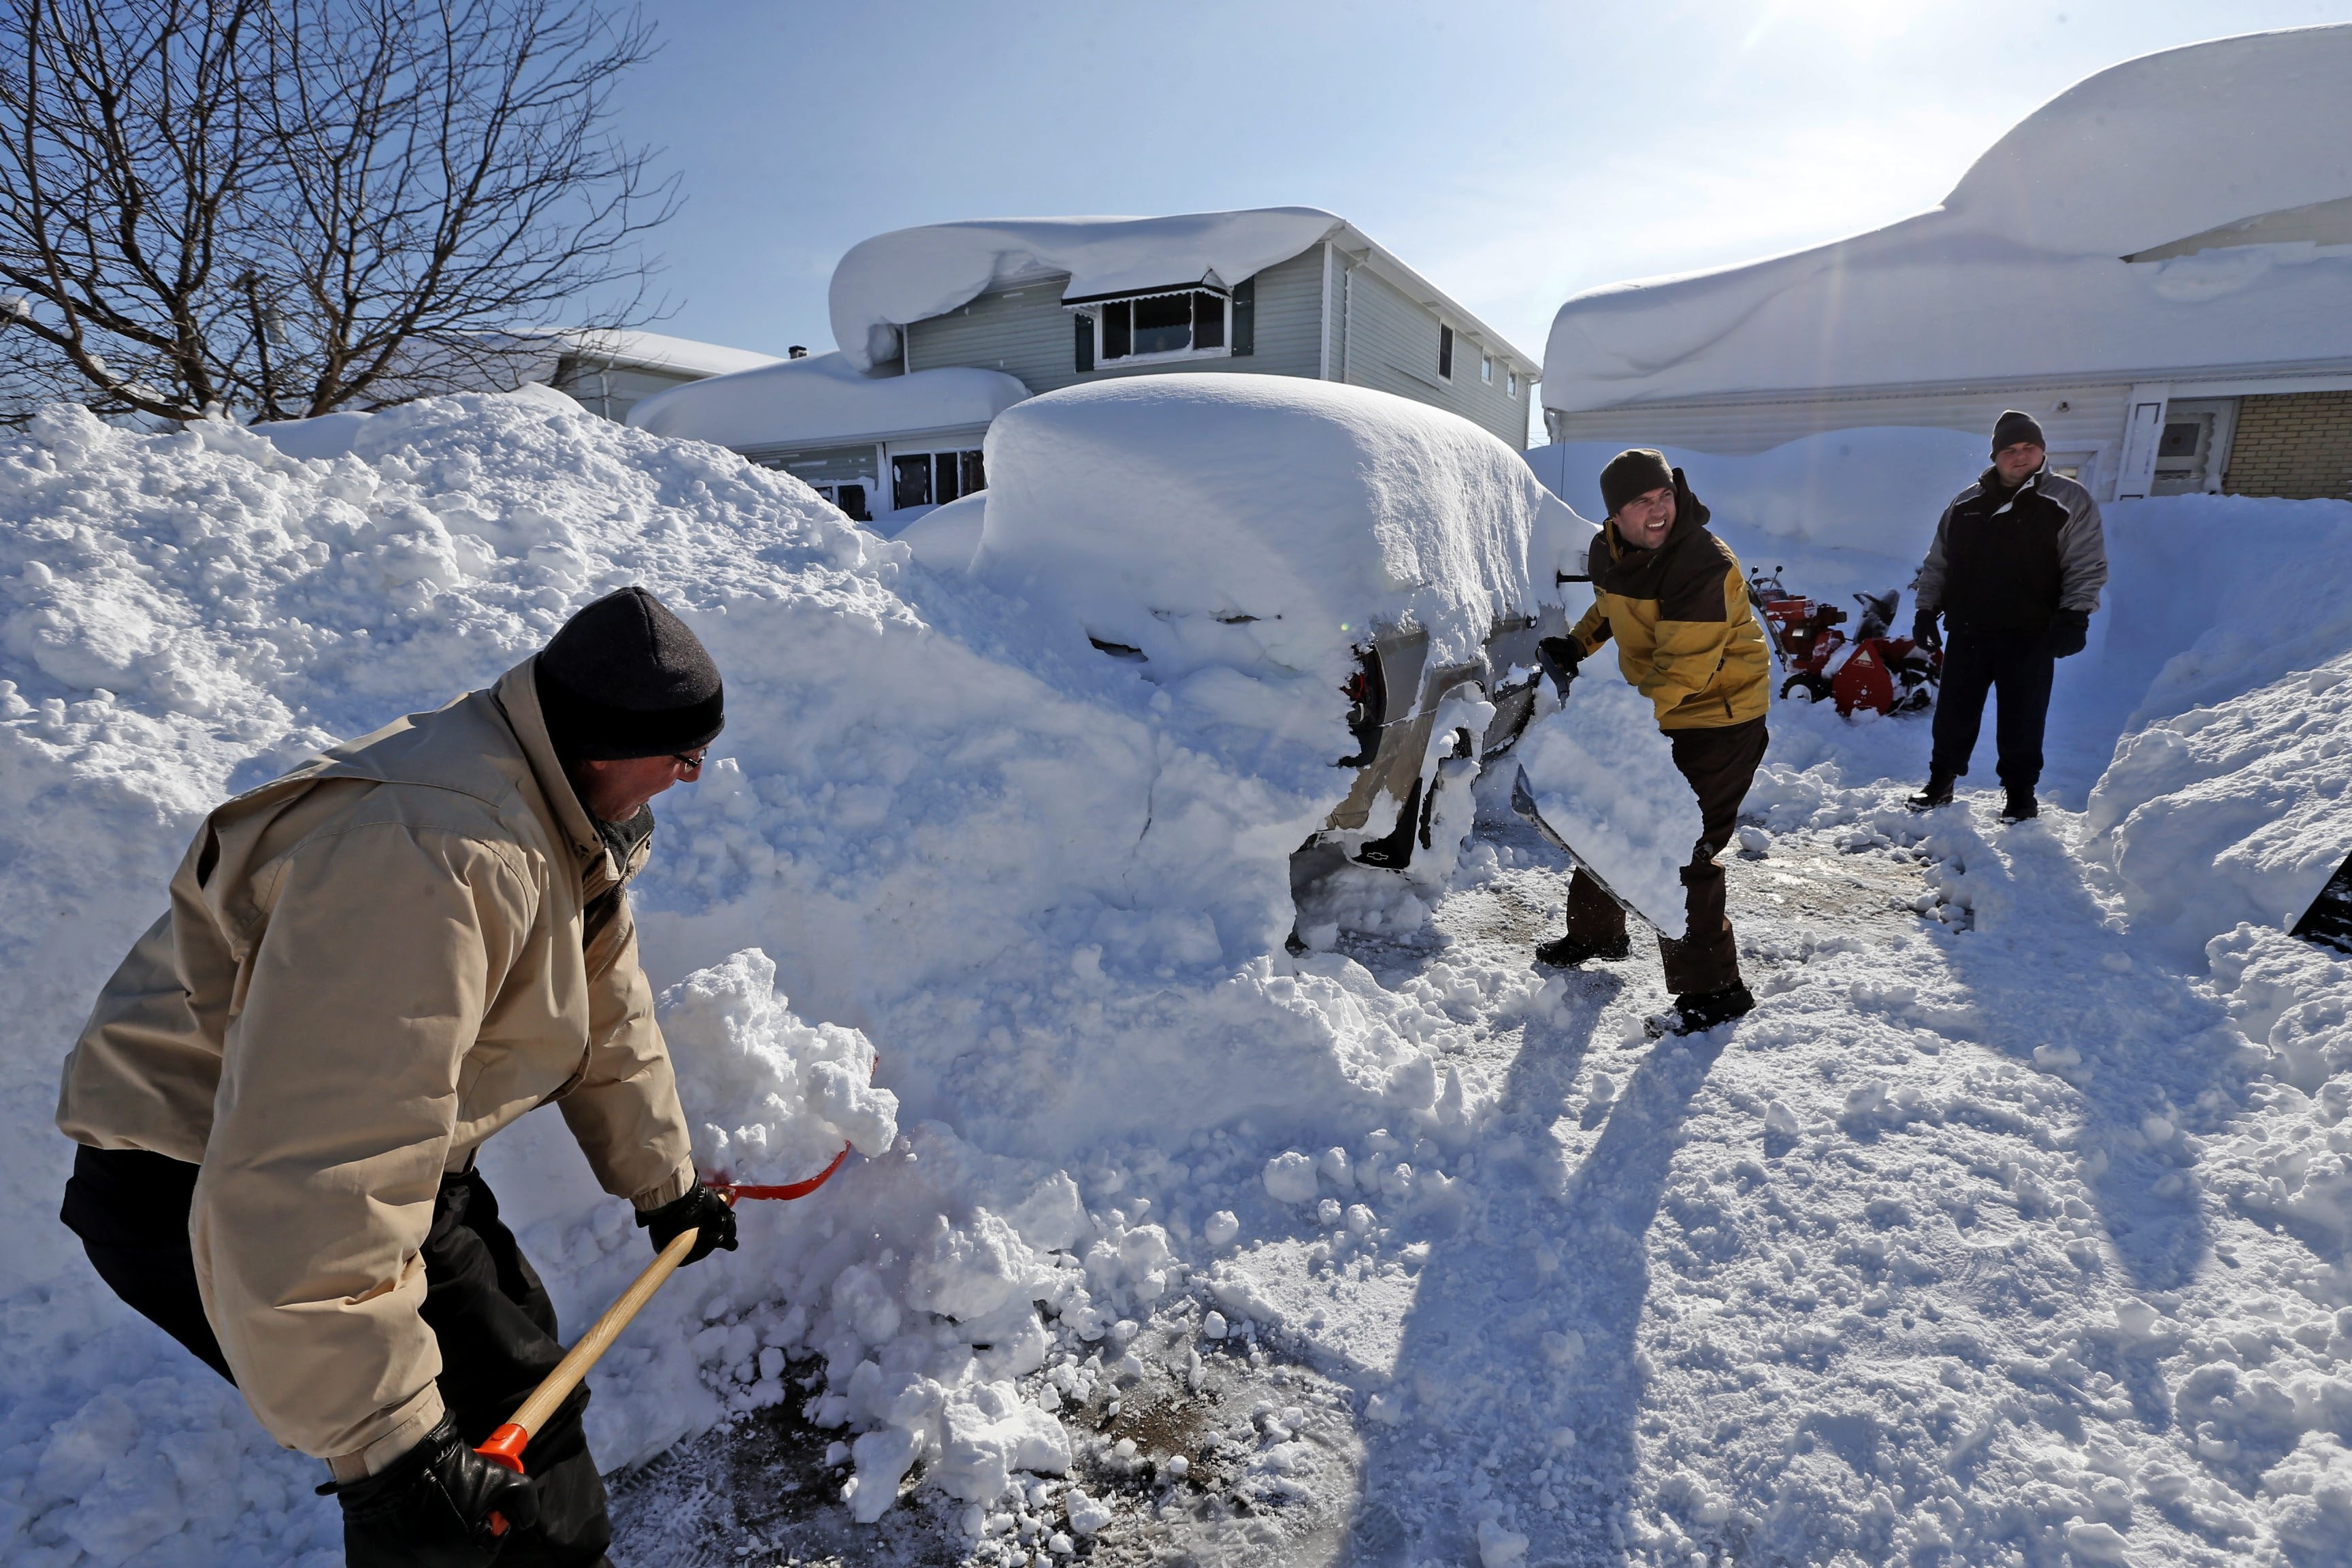 It's important to follow some simple guidelines when shoveling snow like Rick Flick did in Depew following last week's massive storm.